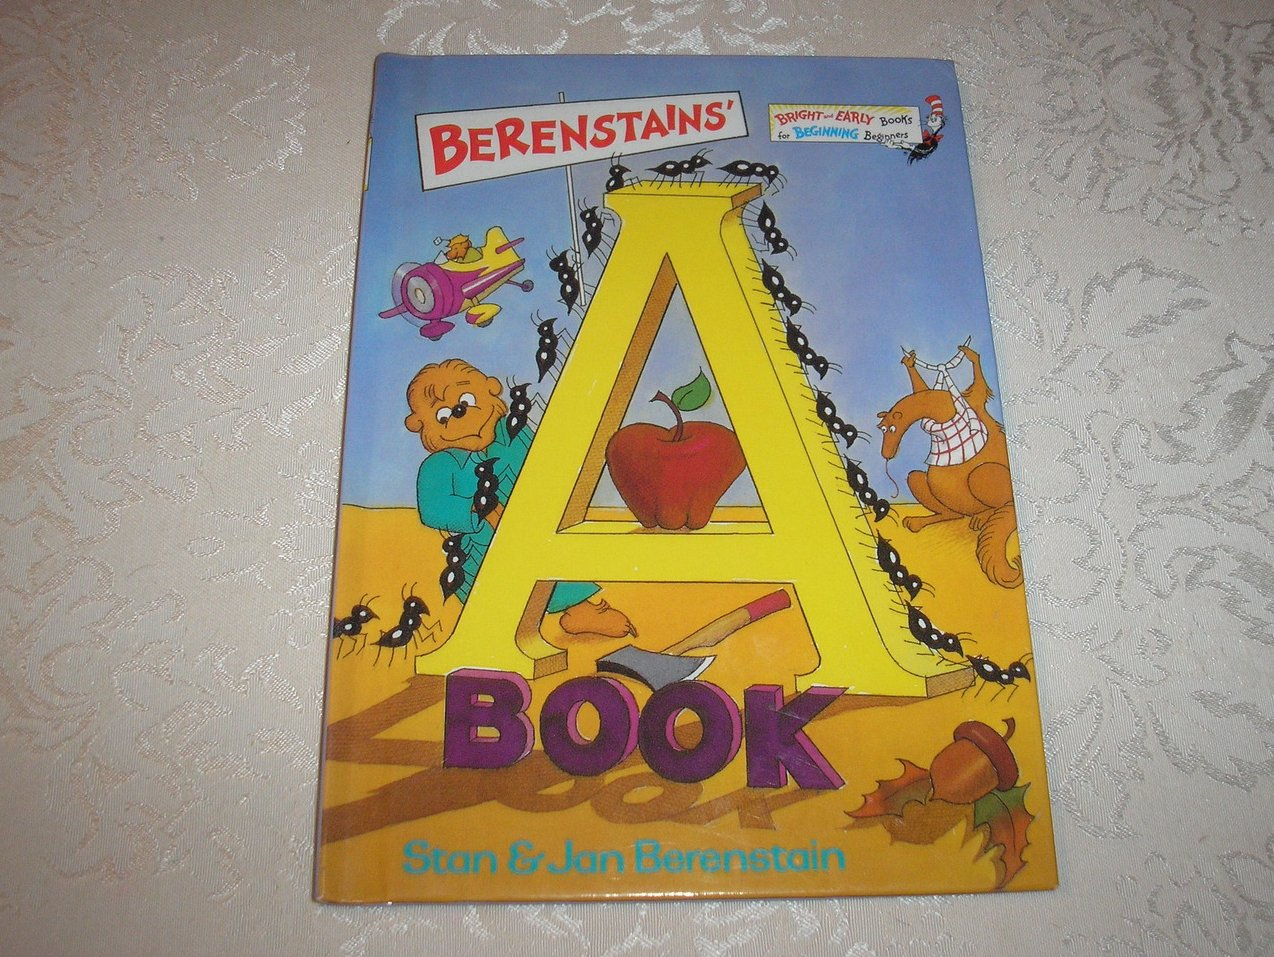 Berenstains' A Book Stan and Jan Berenstain good hc